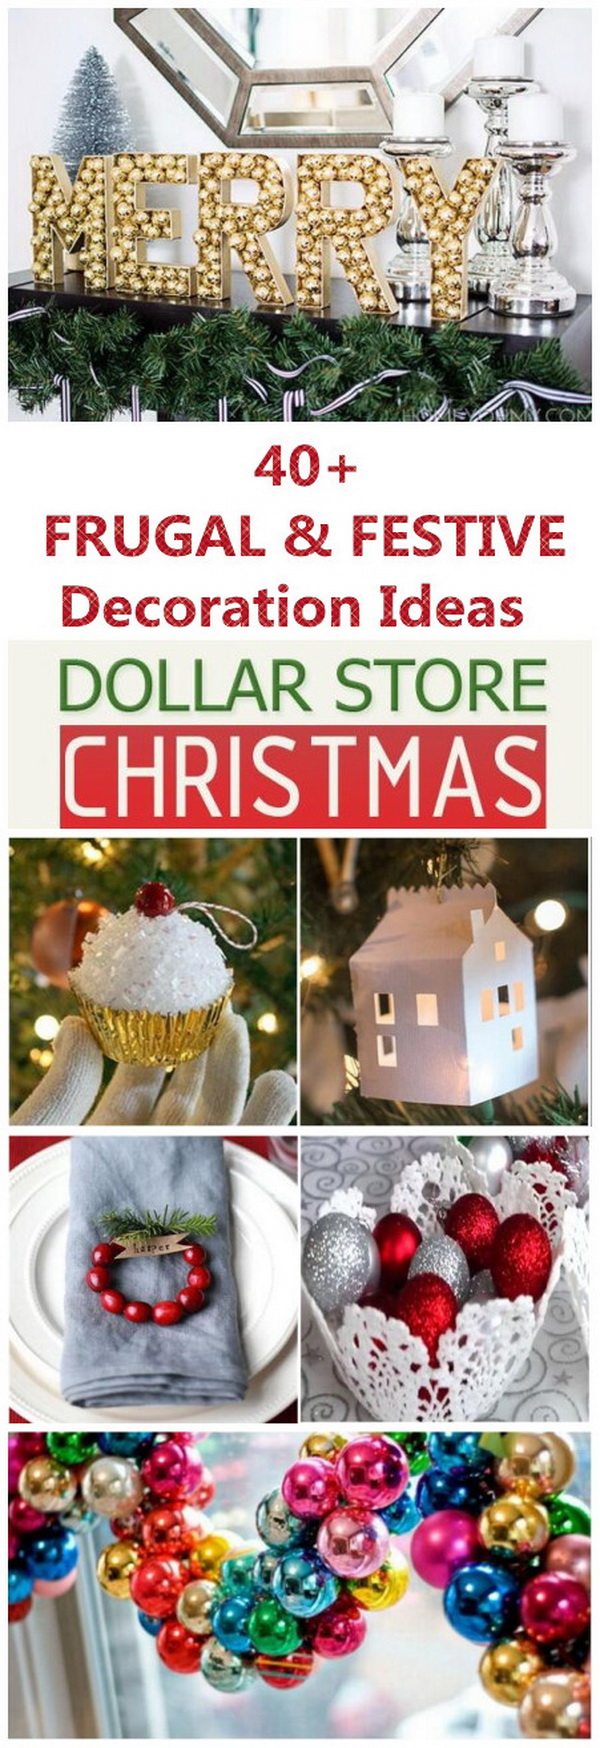 40+ Frugal and Festive DIY Dollar Store Christmas Decoration Ideas ...